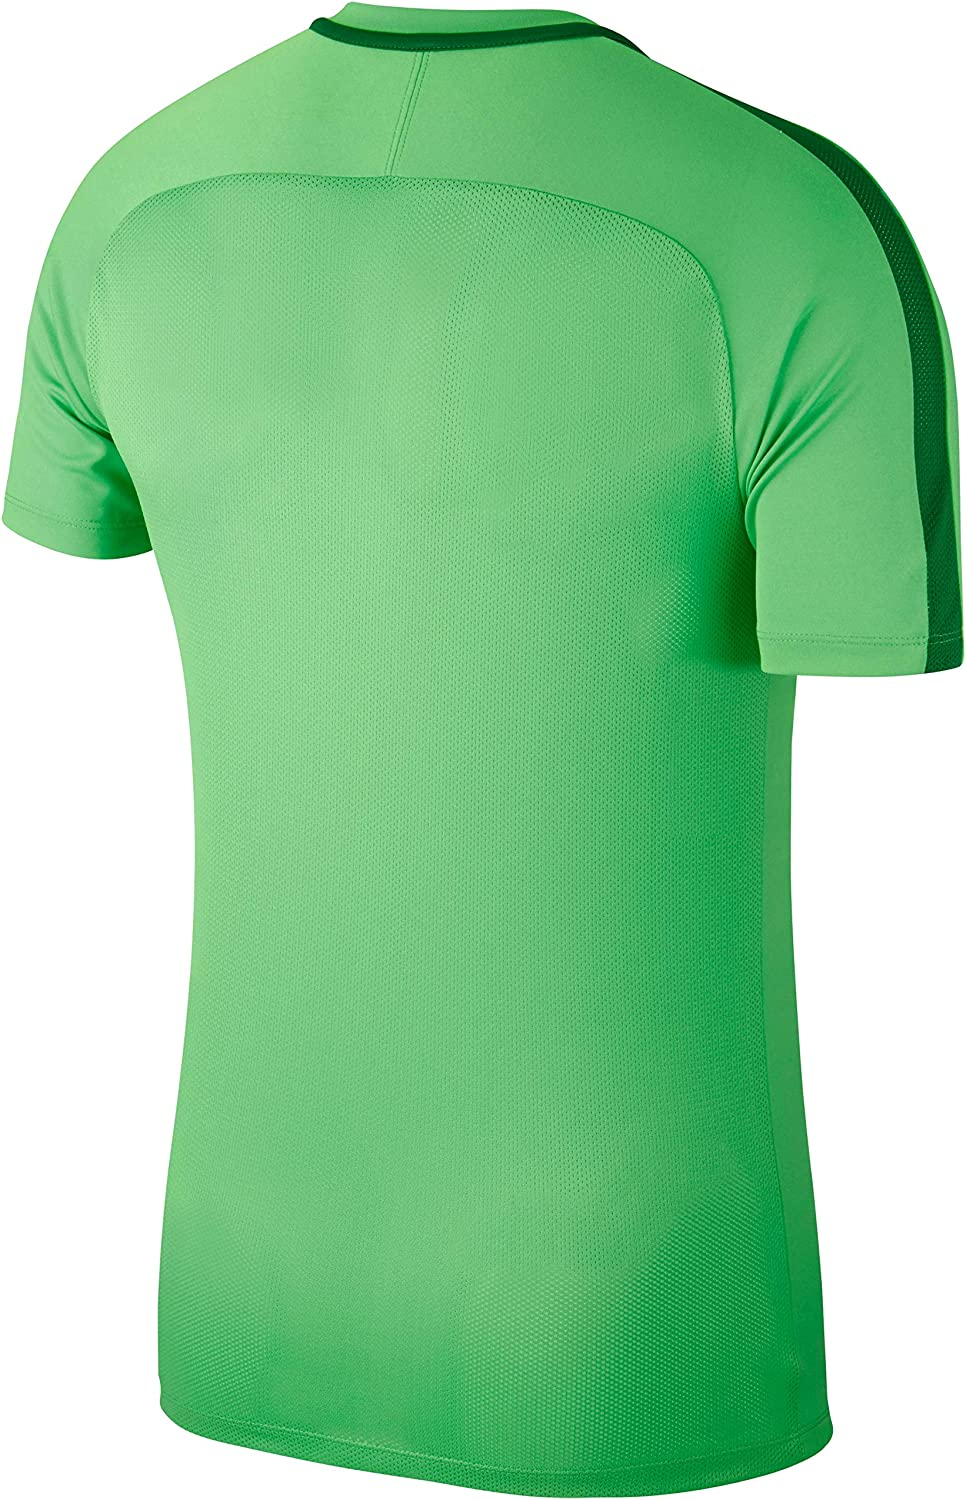 Nike Dry Academy 18 L Maglietta Unisex Bambini Lt Spark Verde//Verde Pino//Bianco